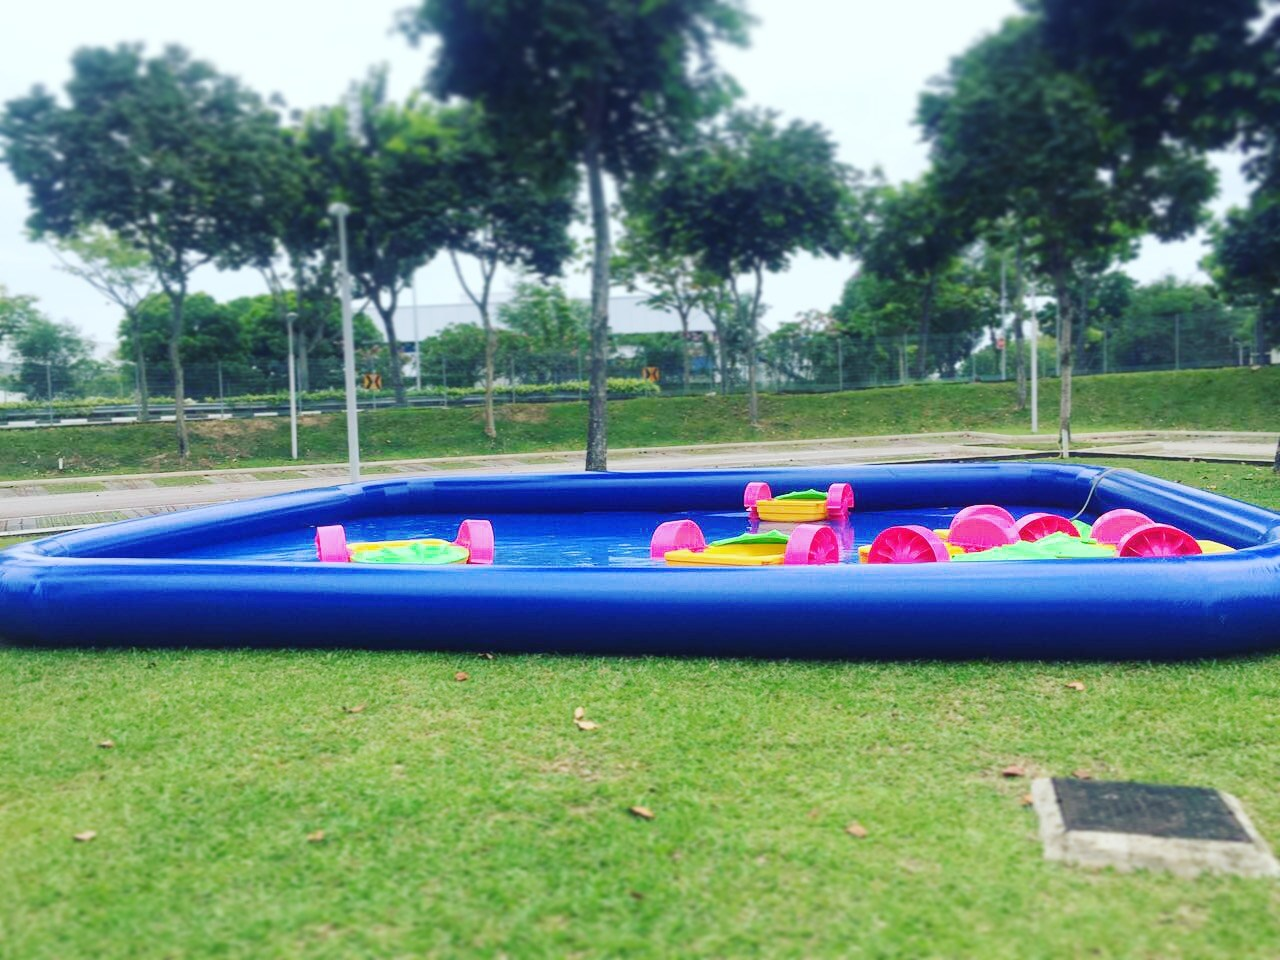 Move across the pool with our paddle boats! It is a fun way of getting around in the pool